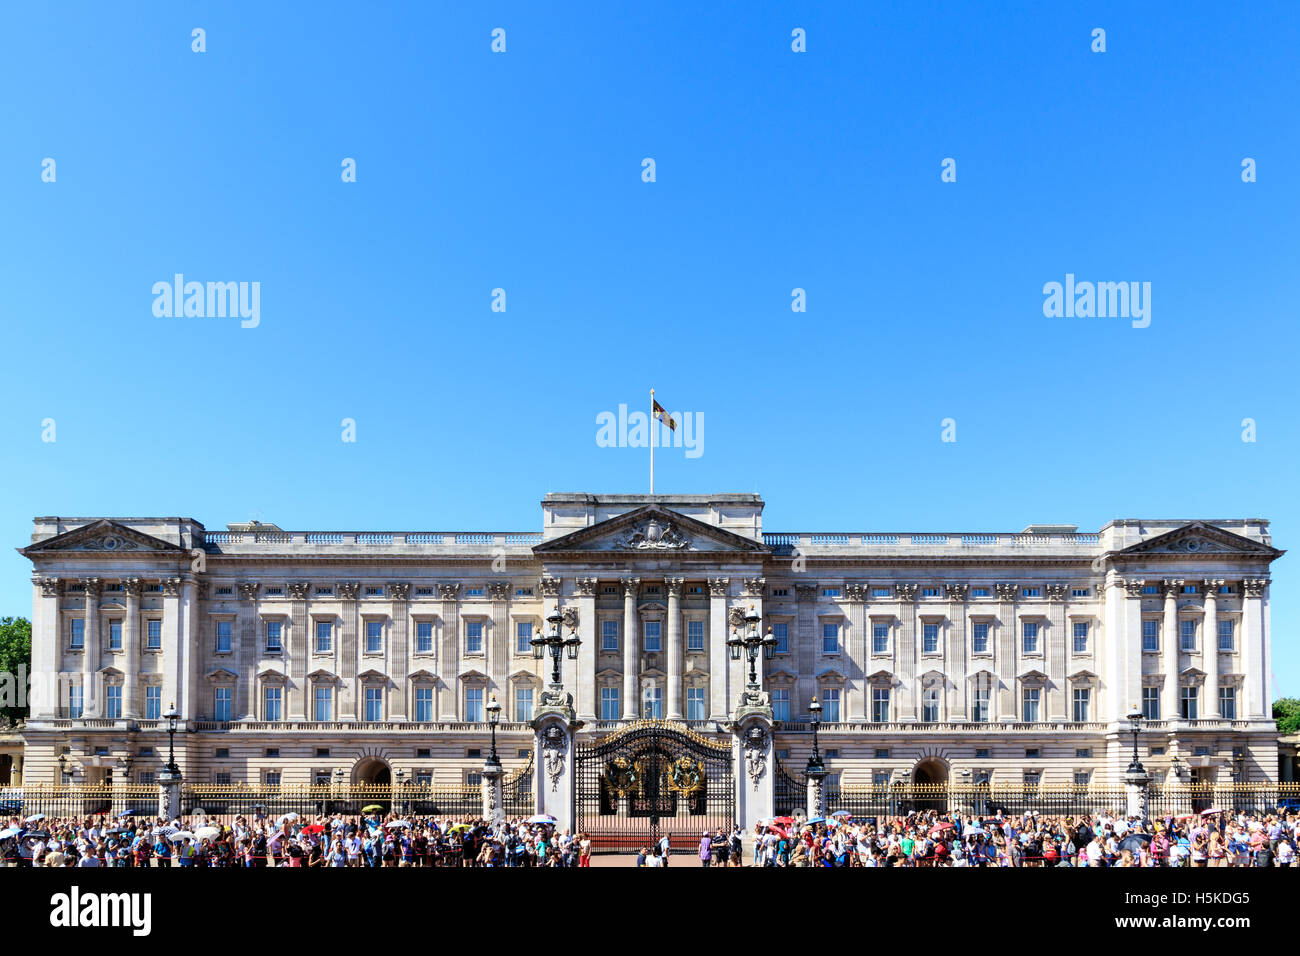 Buckingham Palace in London with a crowd of tourists on a cloudless day - Stock Image